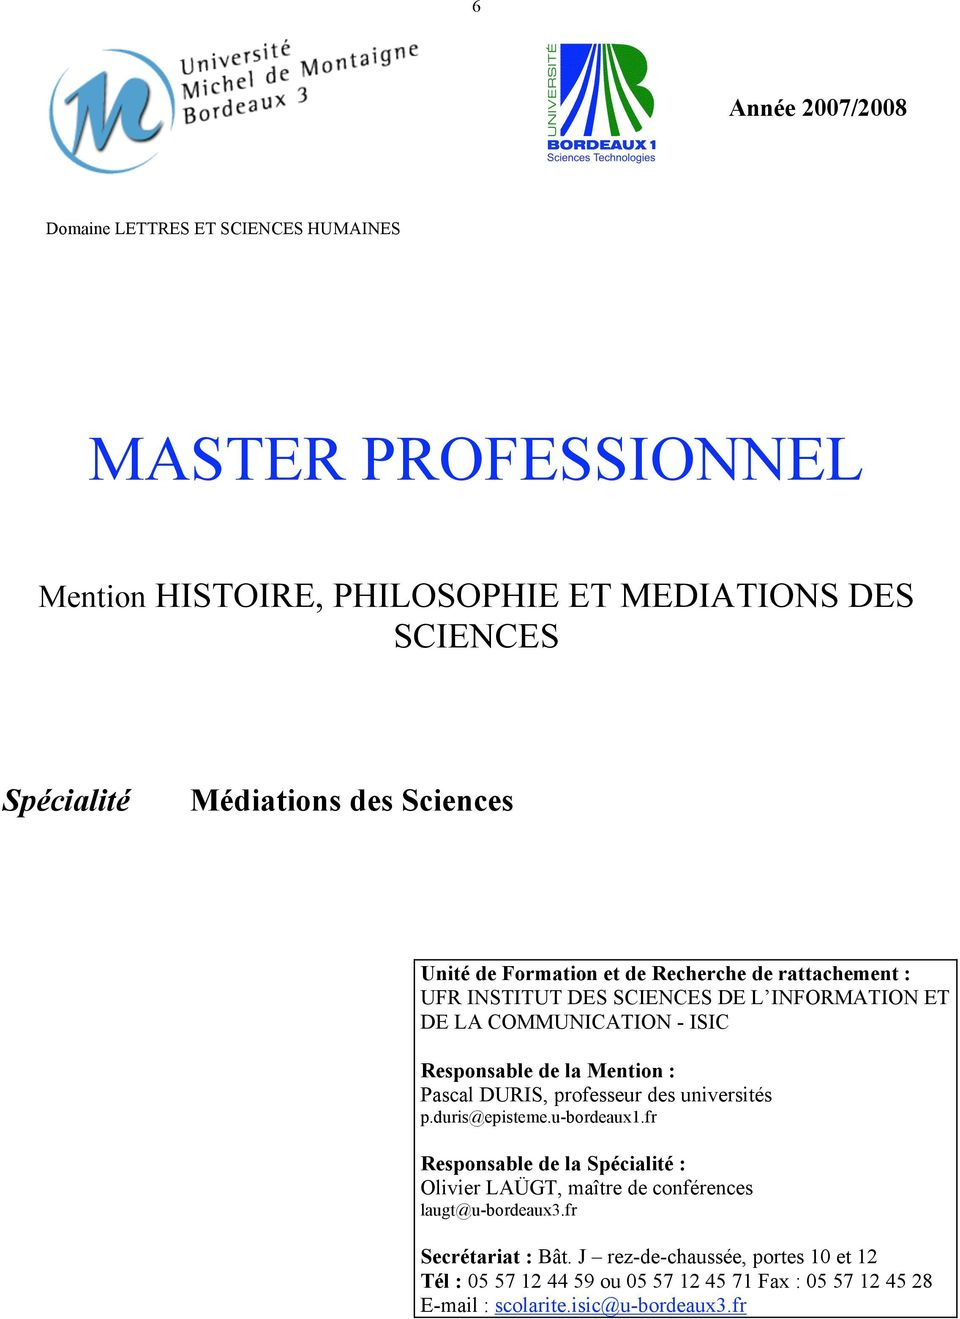 Mention : Pascal DURIS, professeur des universités p.duris@episteme.u-bordeaux1.